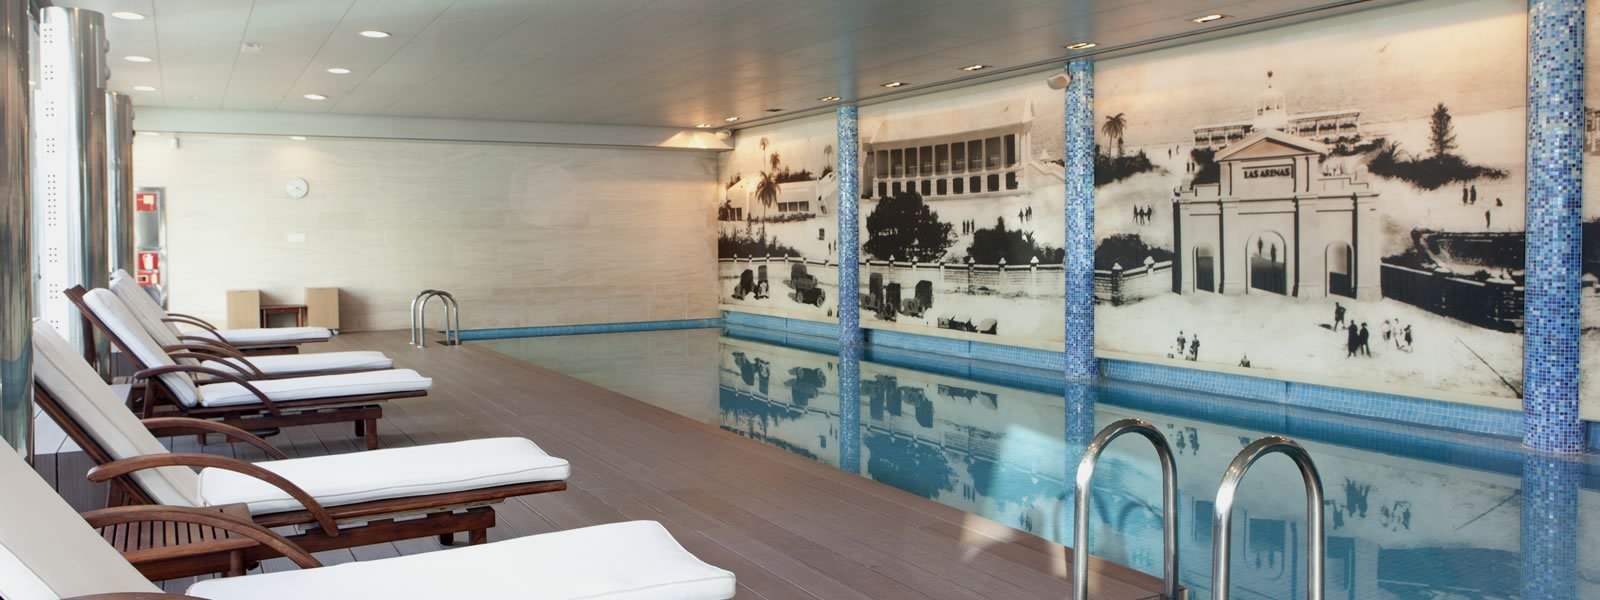 Indoor swimming pool to enjoy all year long.